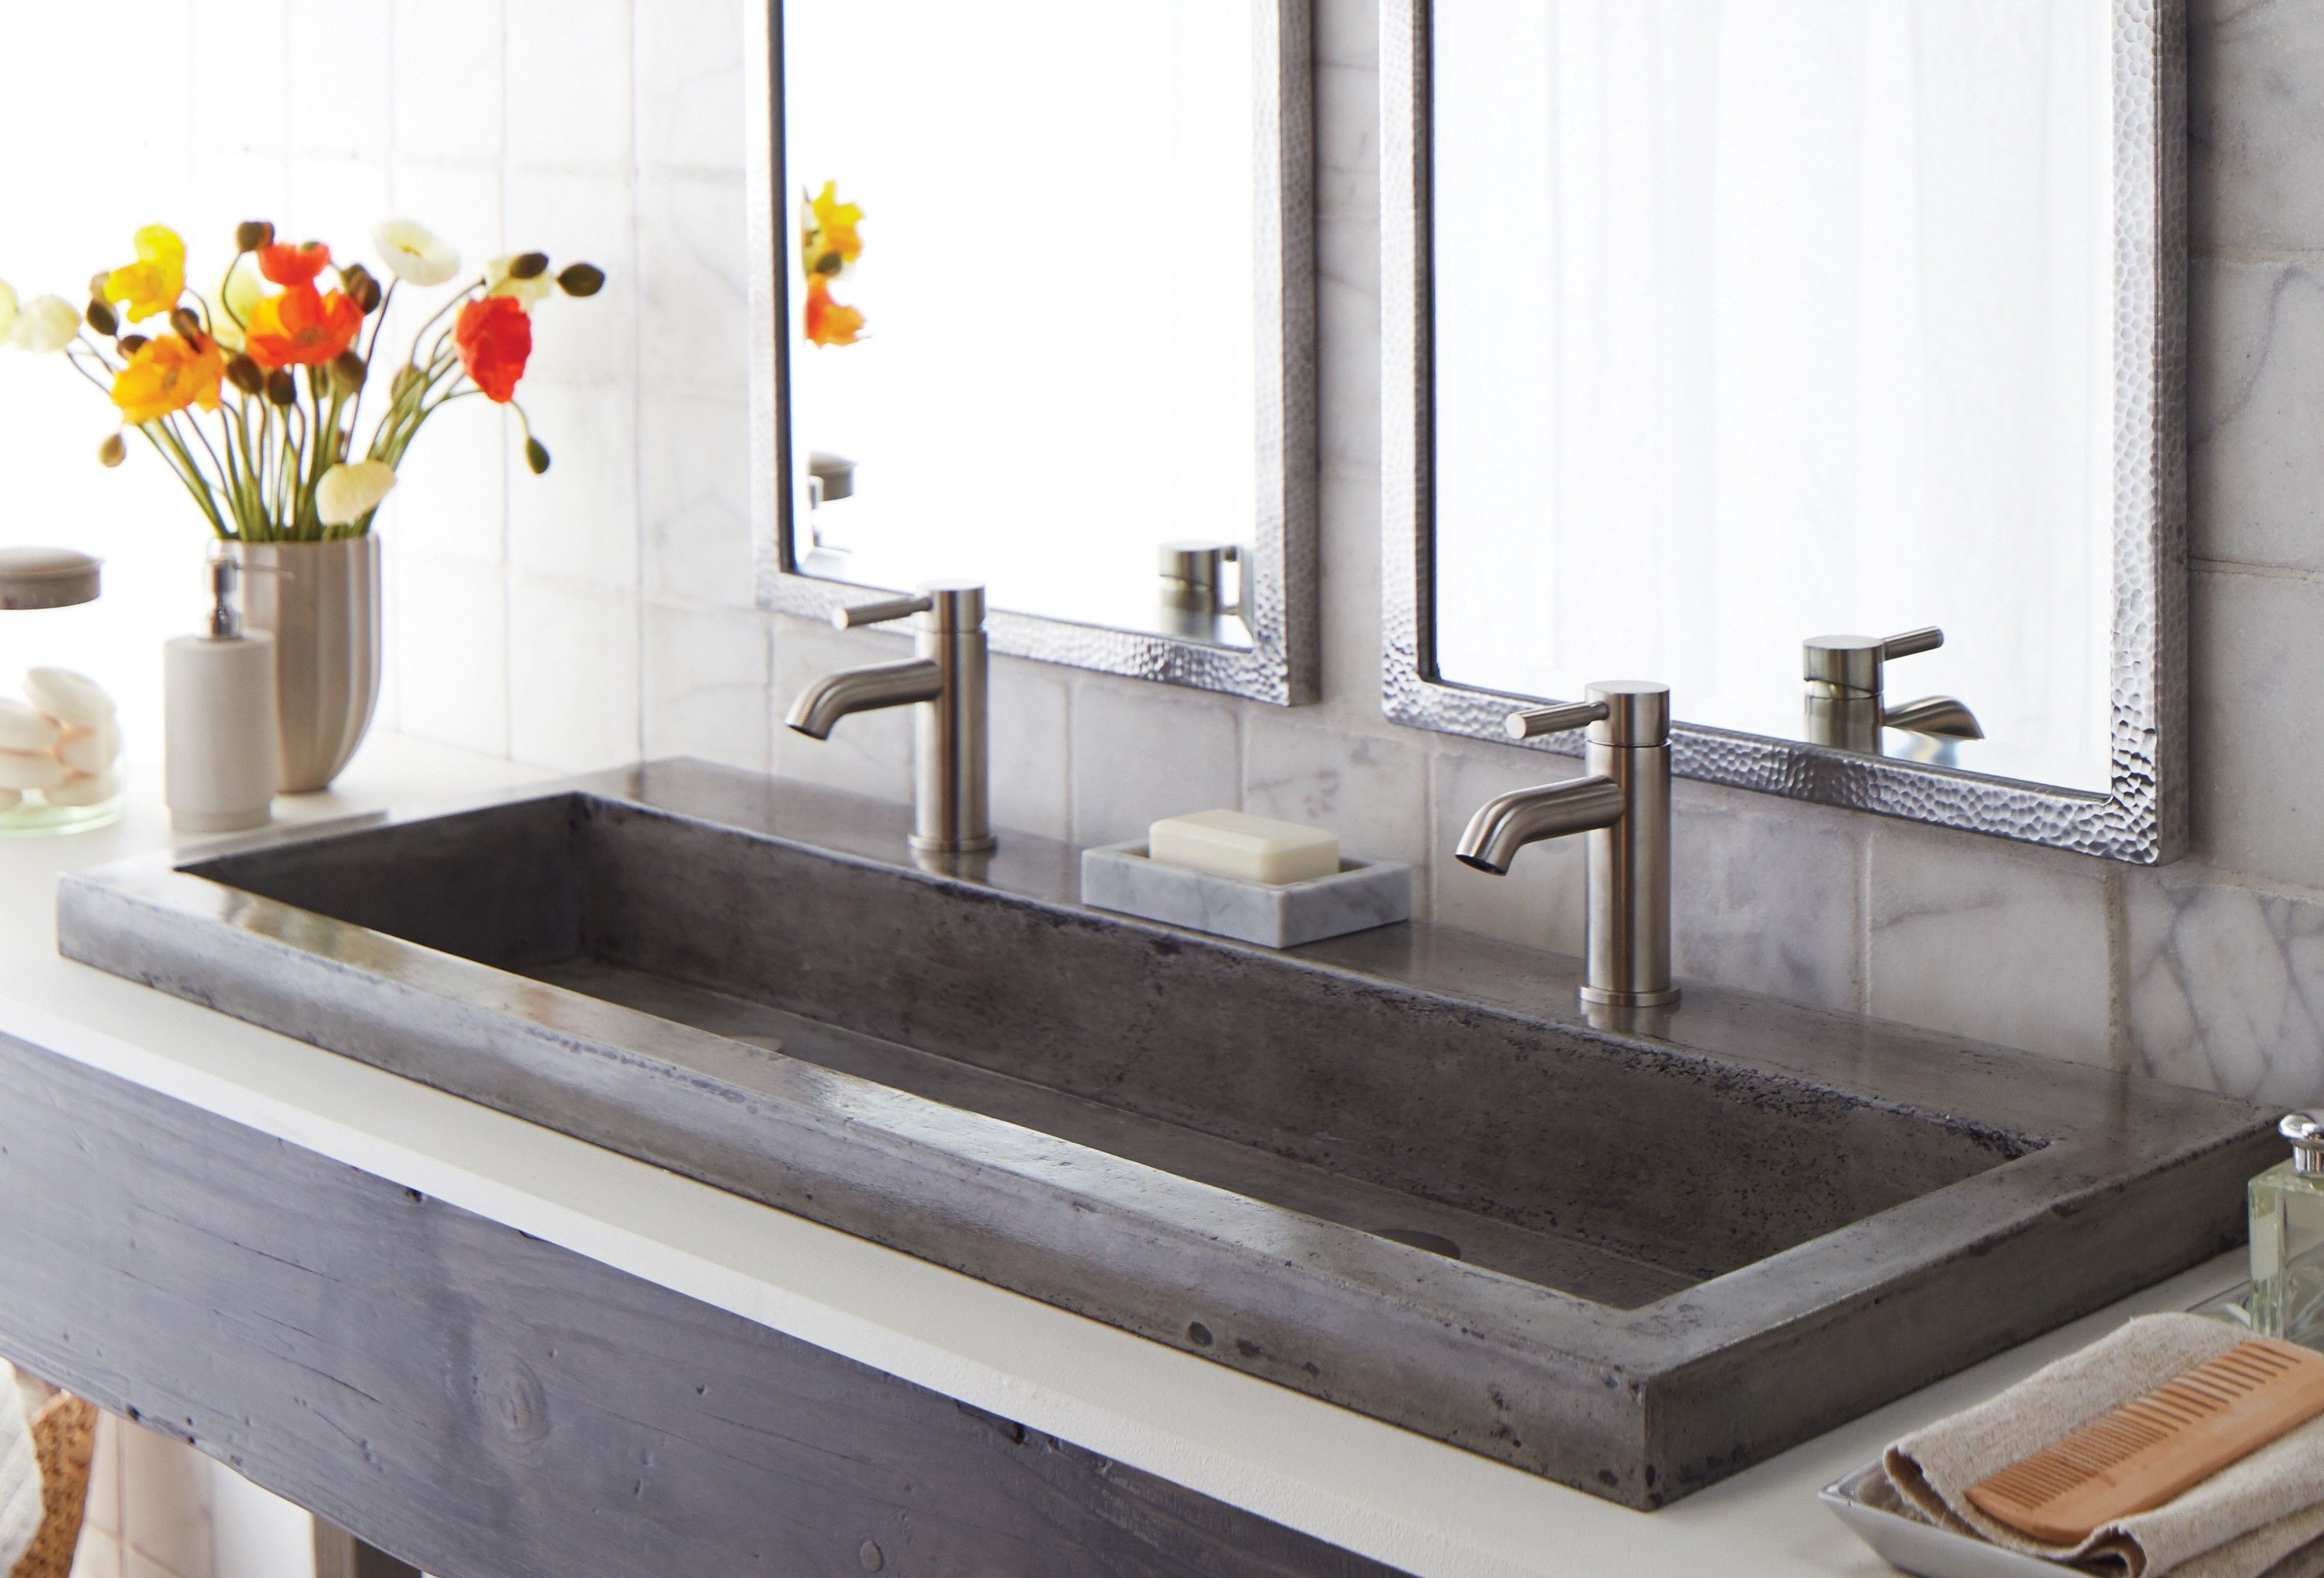 Gray Glaze Concrete With Double Chrome Metal Single Handle Faucet Of Appealing Concrete Drop In Bathroom Sinks Contemporary Bathroom Sinks Mirror Wall Bedroom